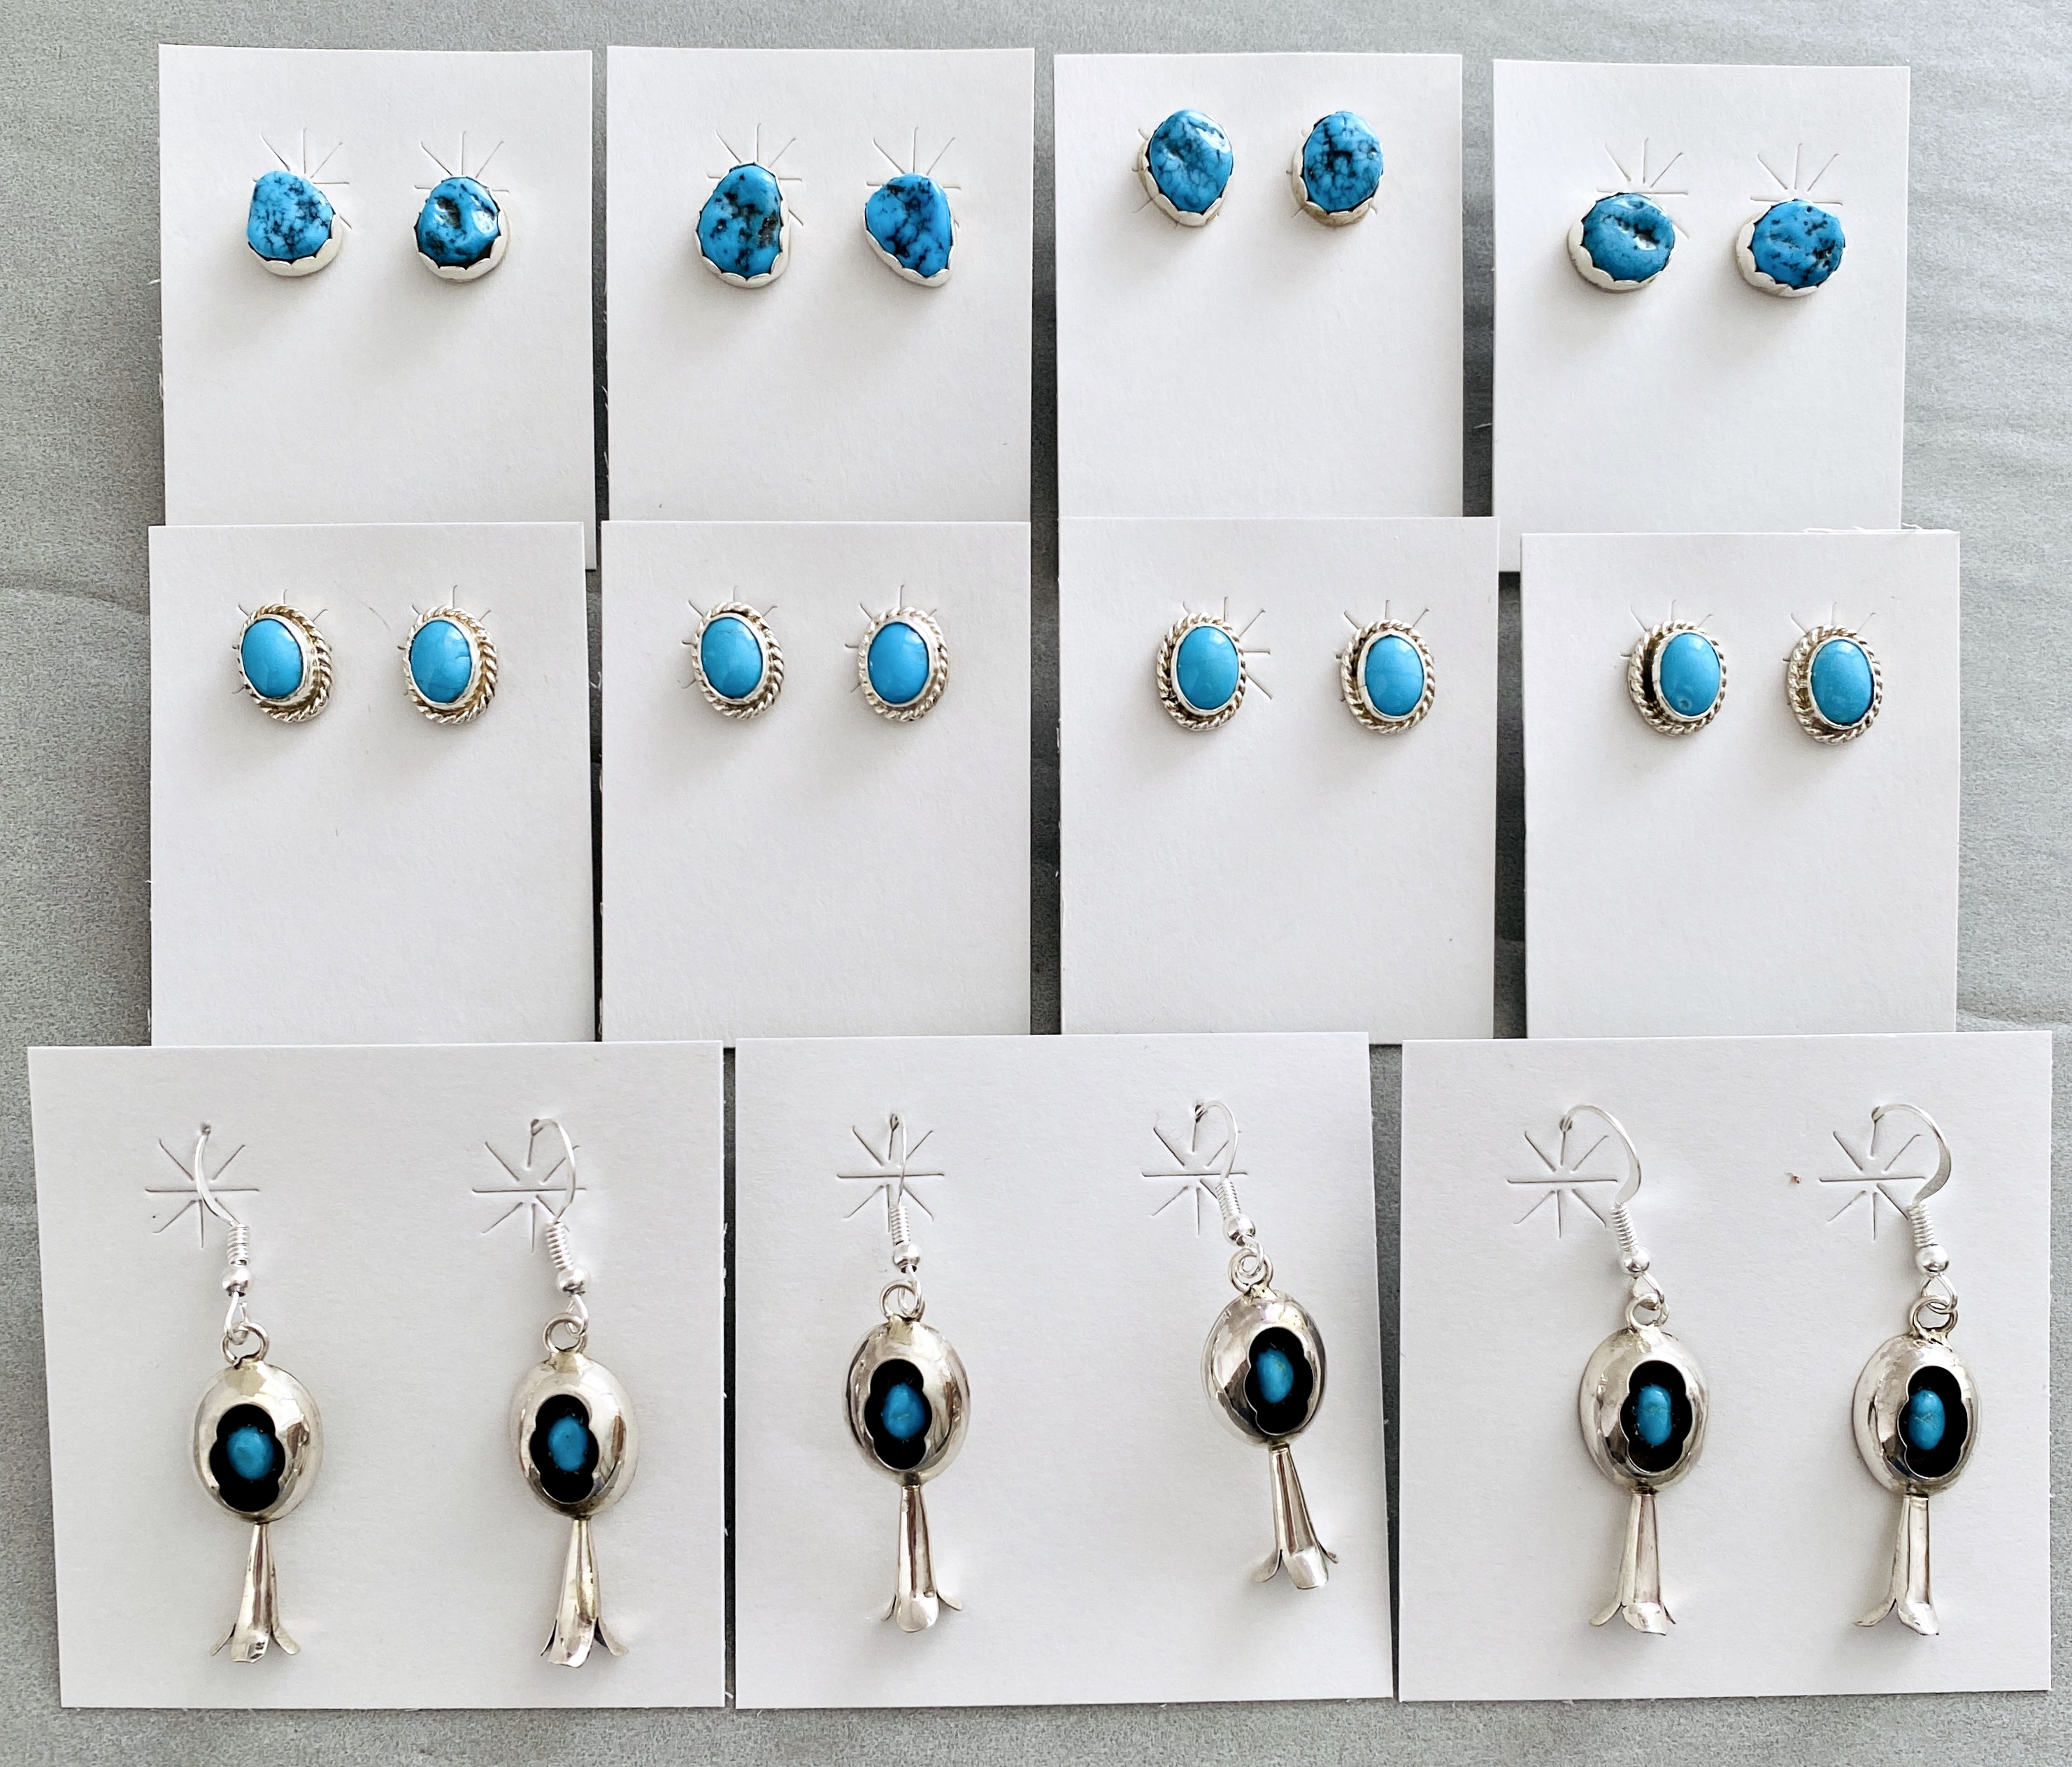 Turquoise studs & wires